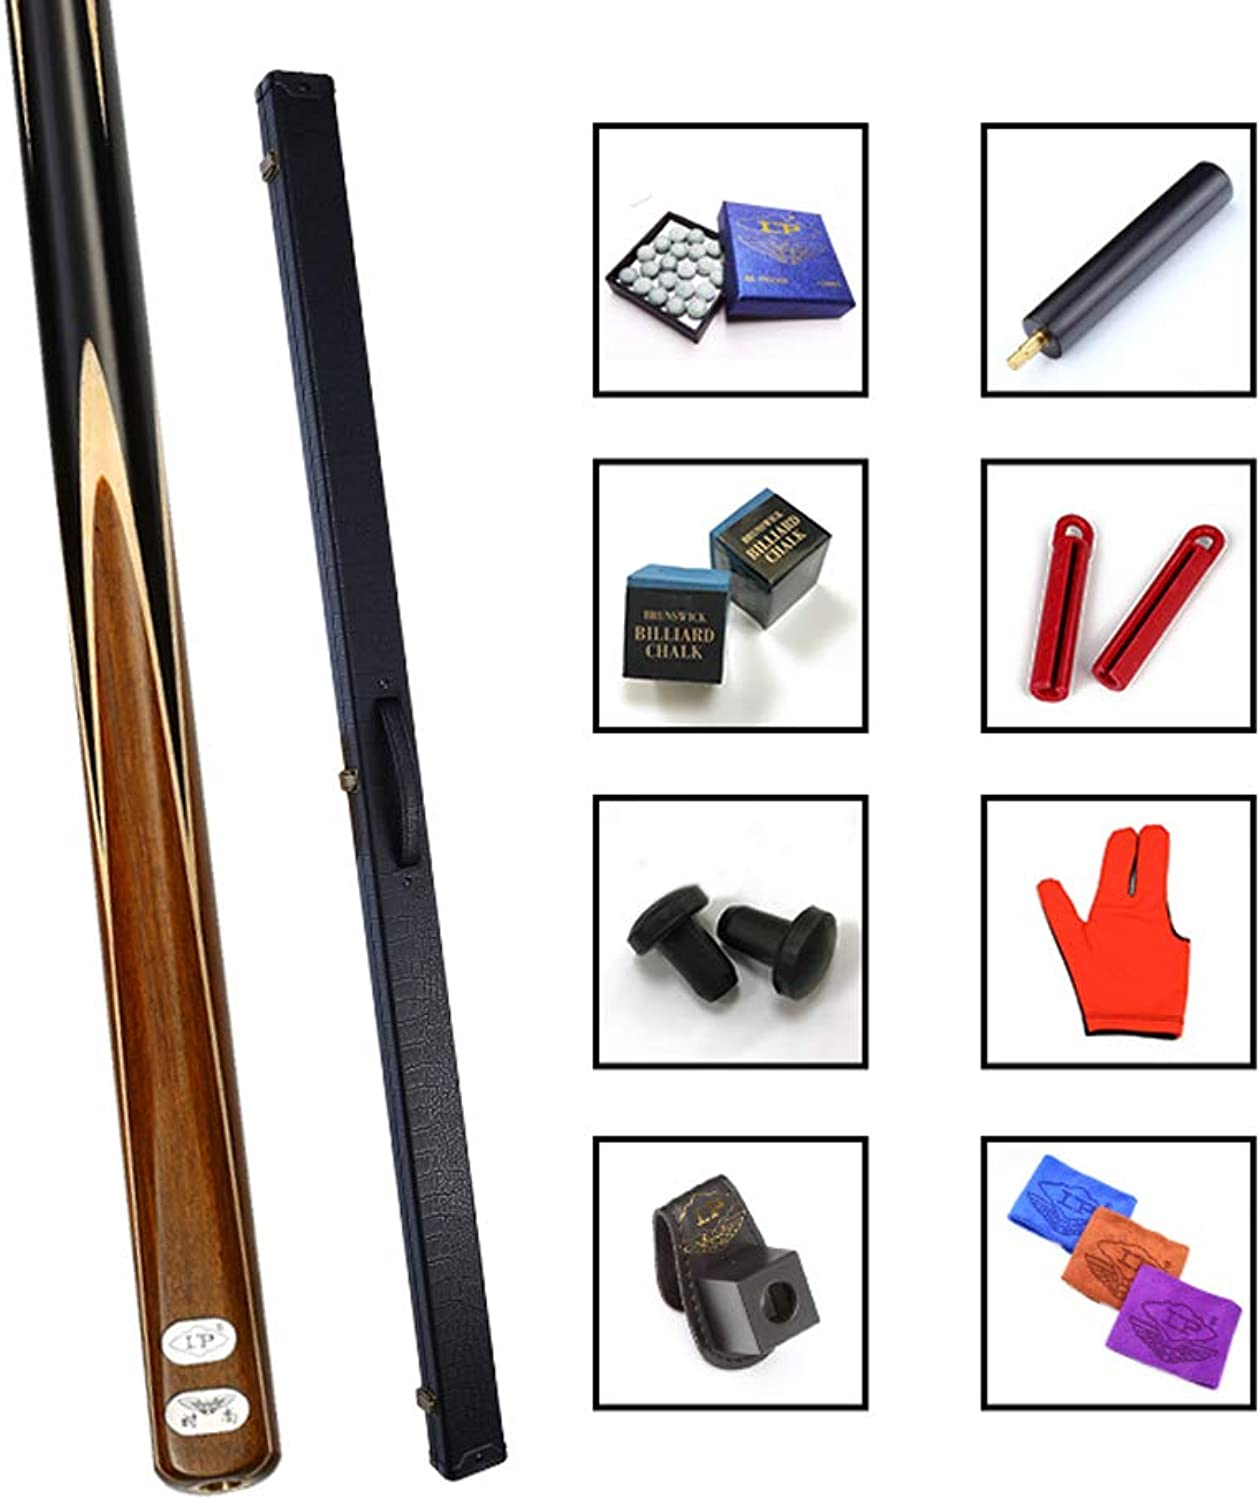 HETAO Pool Cues, Ash Shen Guibao Maple pinkwood Through Club Snooker CUE  Aluminum Leatherette CASE  Extension Indoor